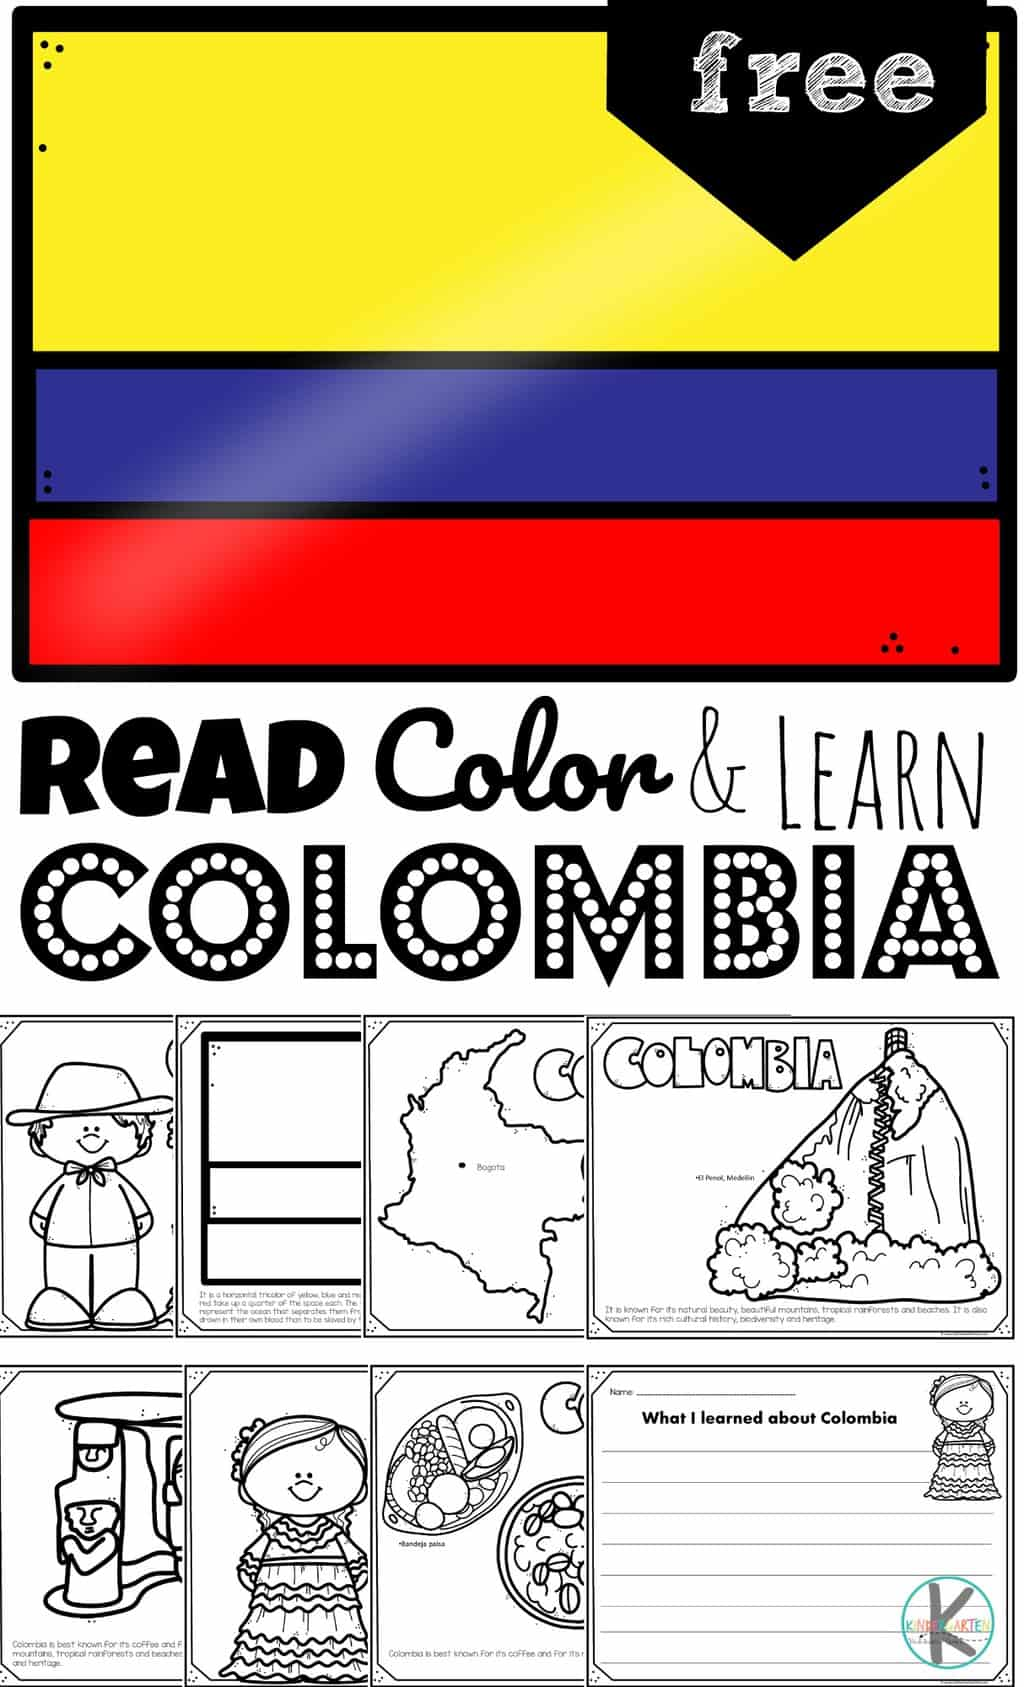 Free Read Color And Learn About Colombia